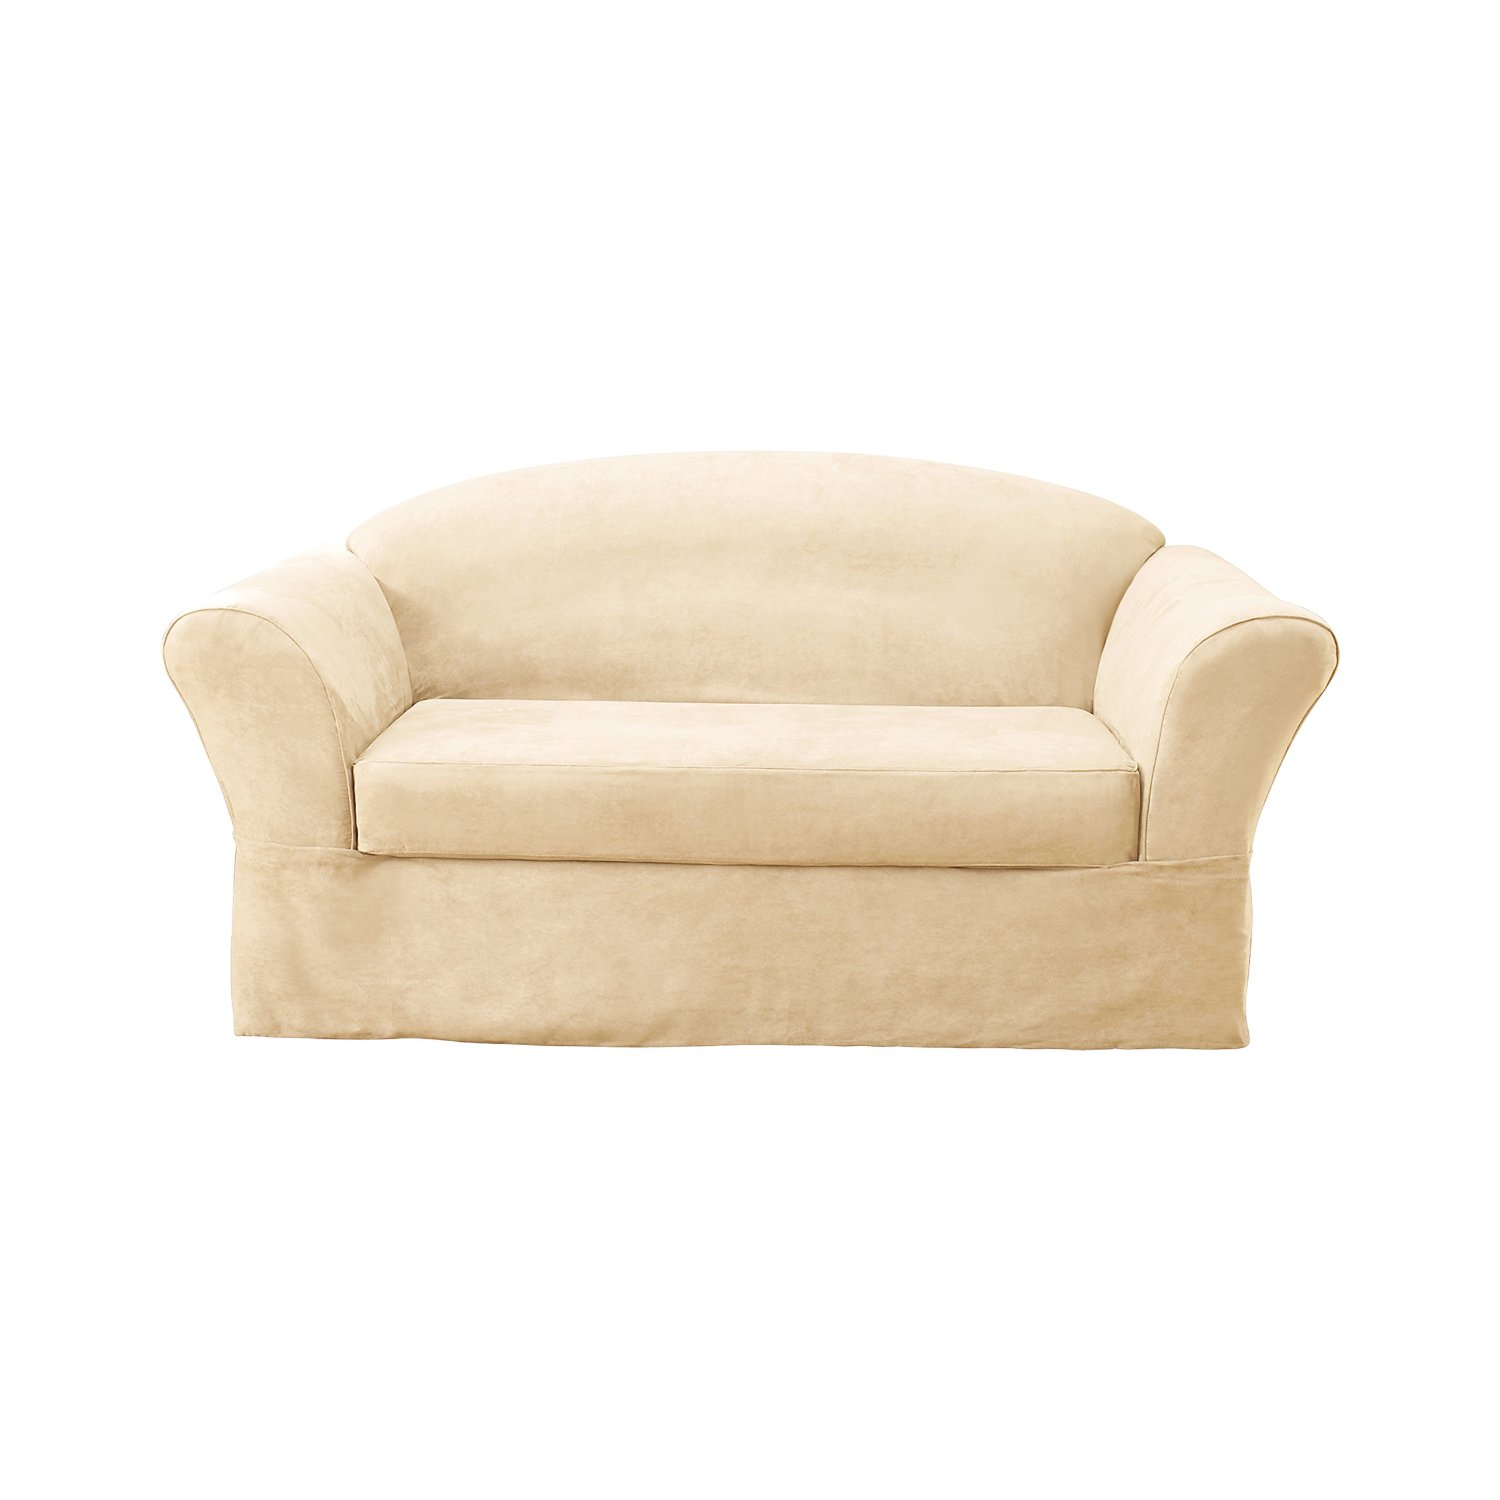 beautiful sofa with white surefit cover for living room furniture ideas